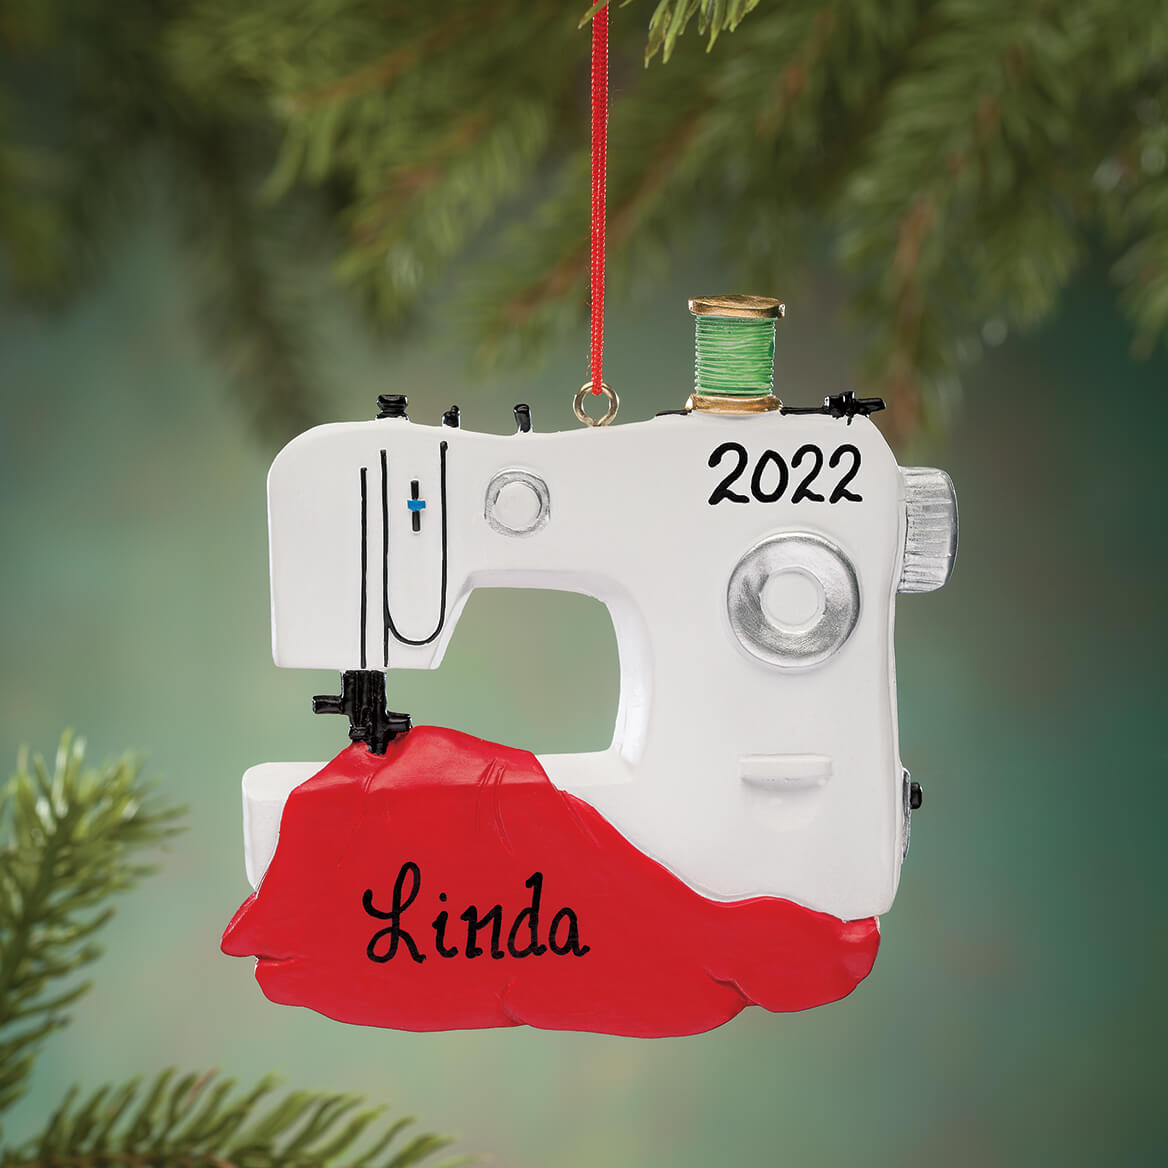 Personalized Sewing Machine Ornament-352925